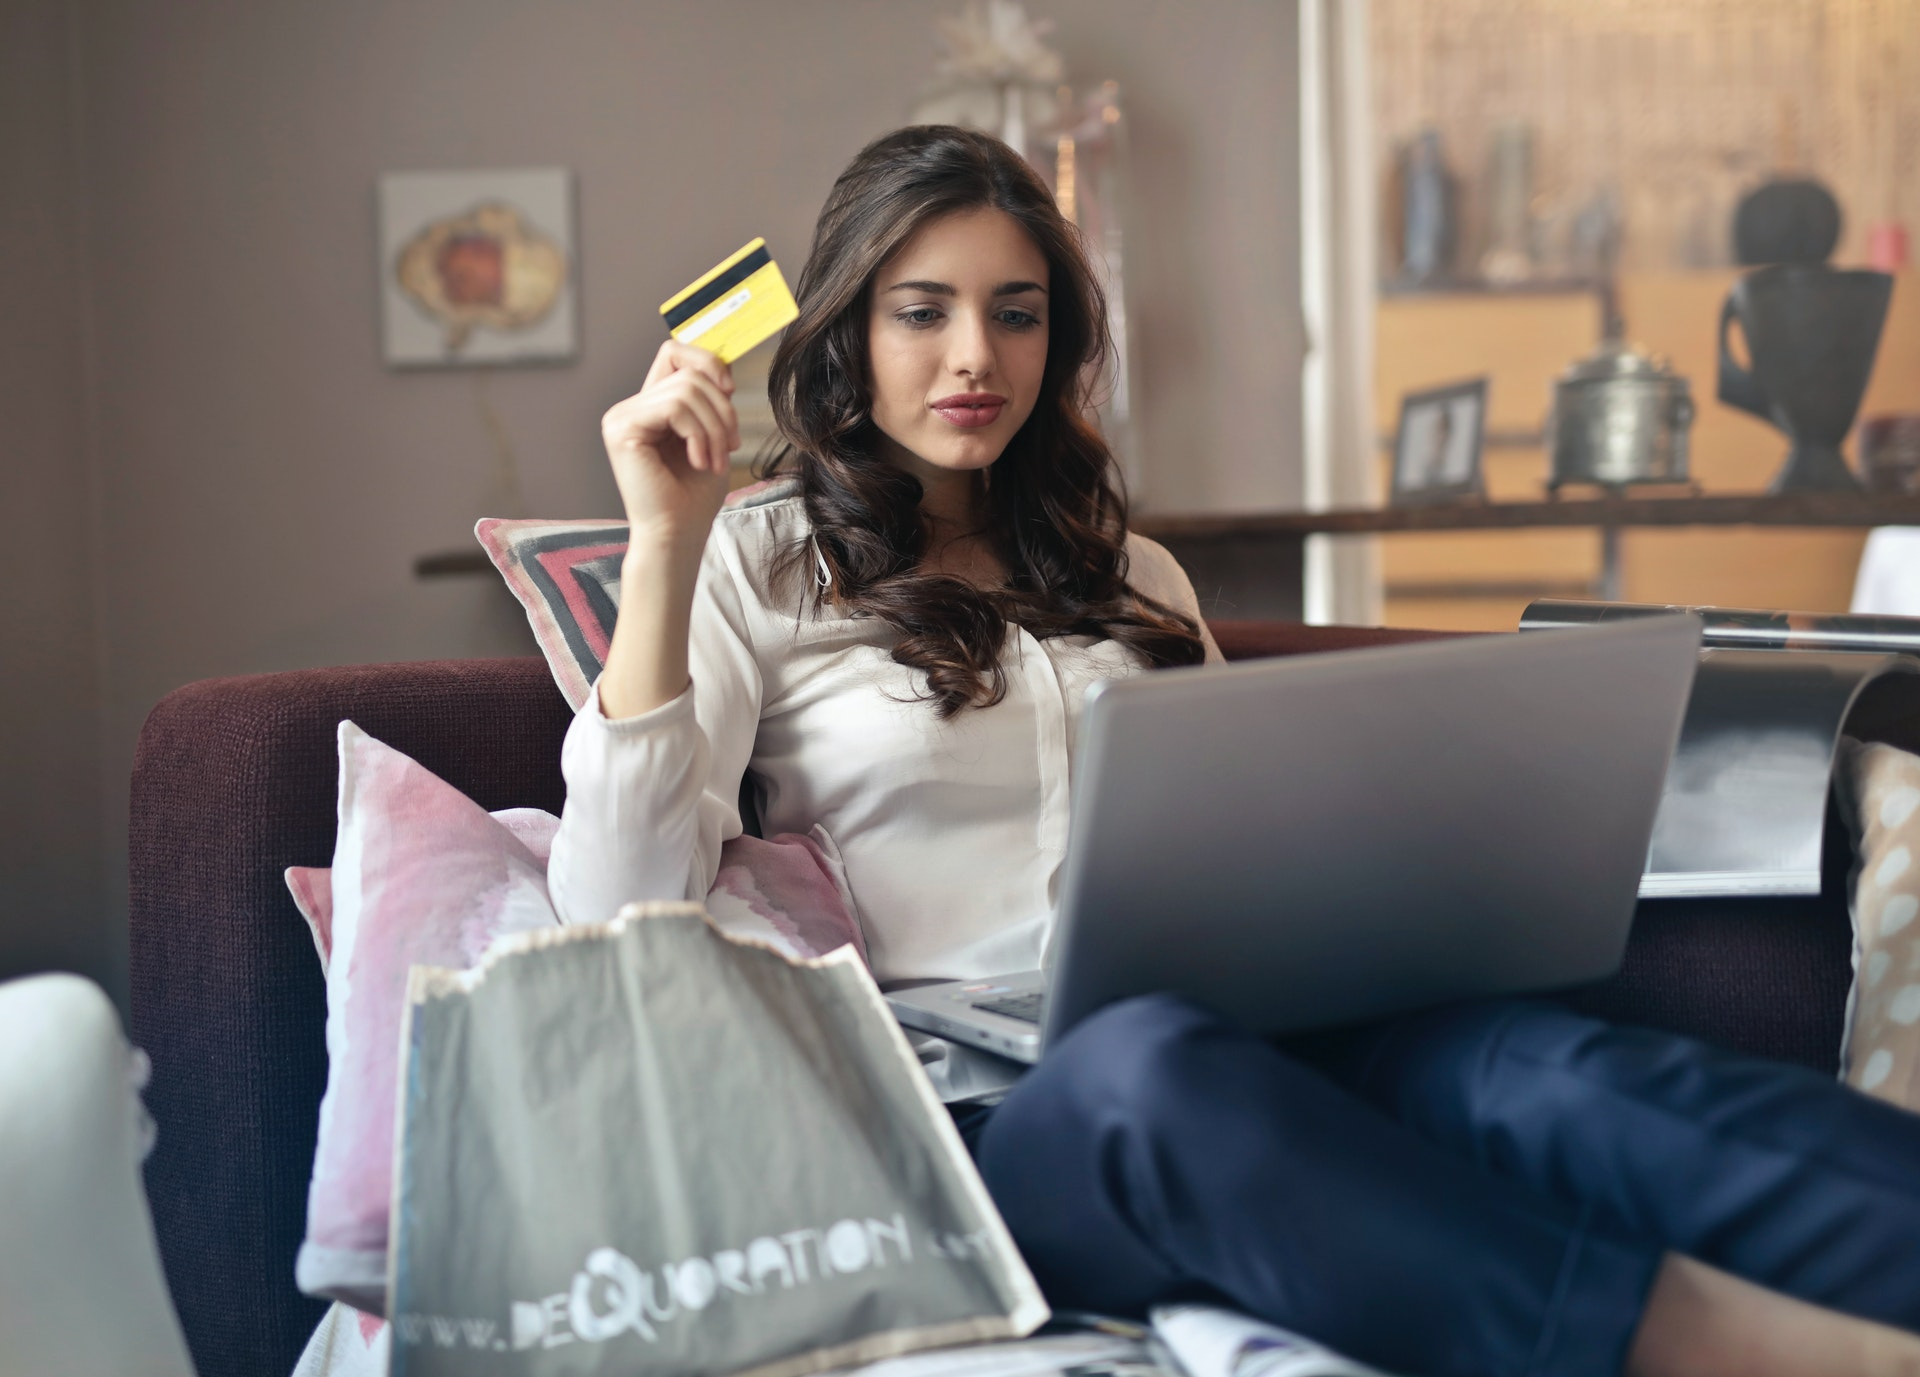 Advantages of Ecommerce – Is It Worth Trying?